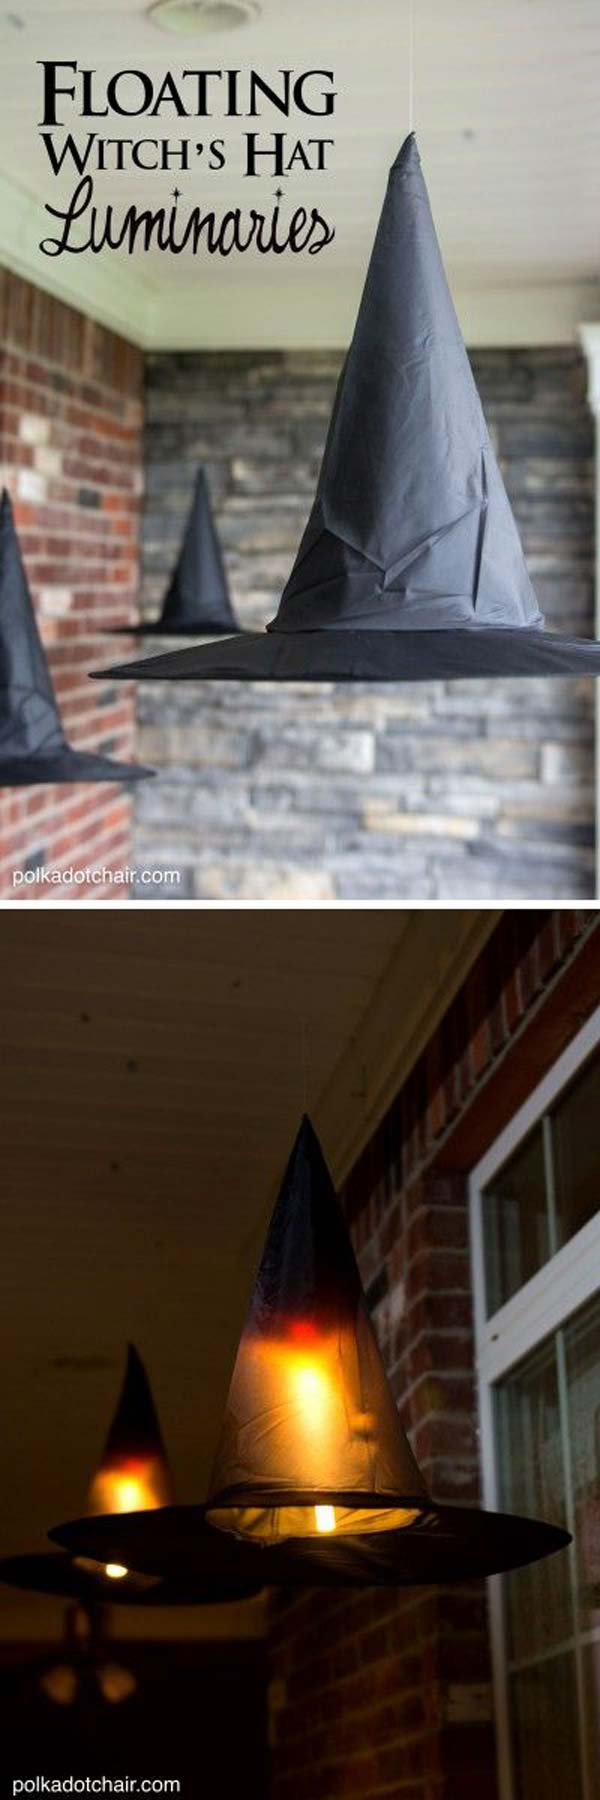 #2 ADD MAGIC TO YOUR PORCH WITH FLOATING WITCH HATS LUMINARIES